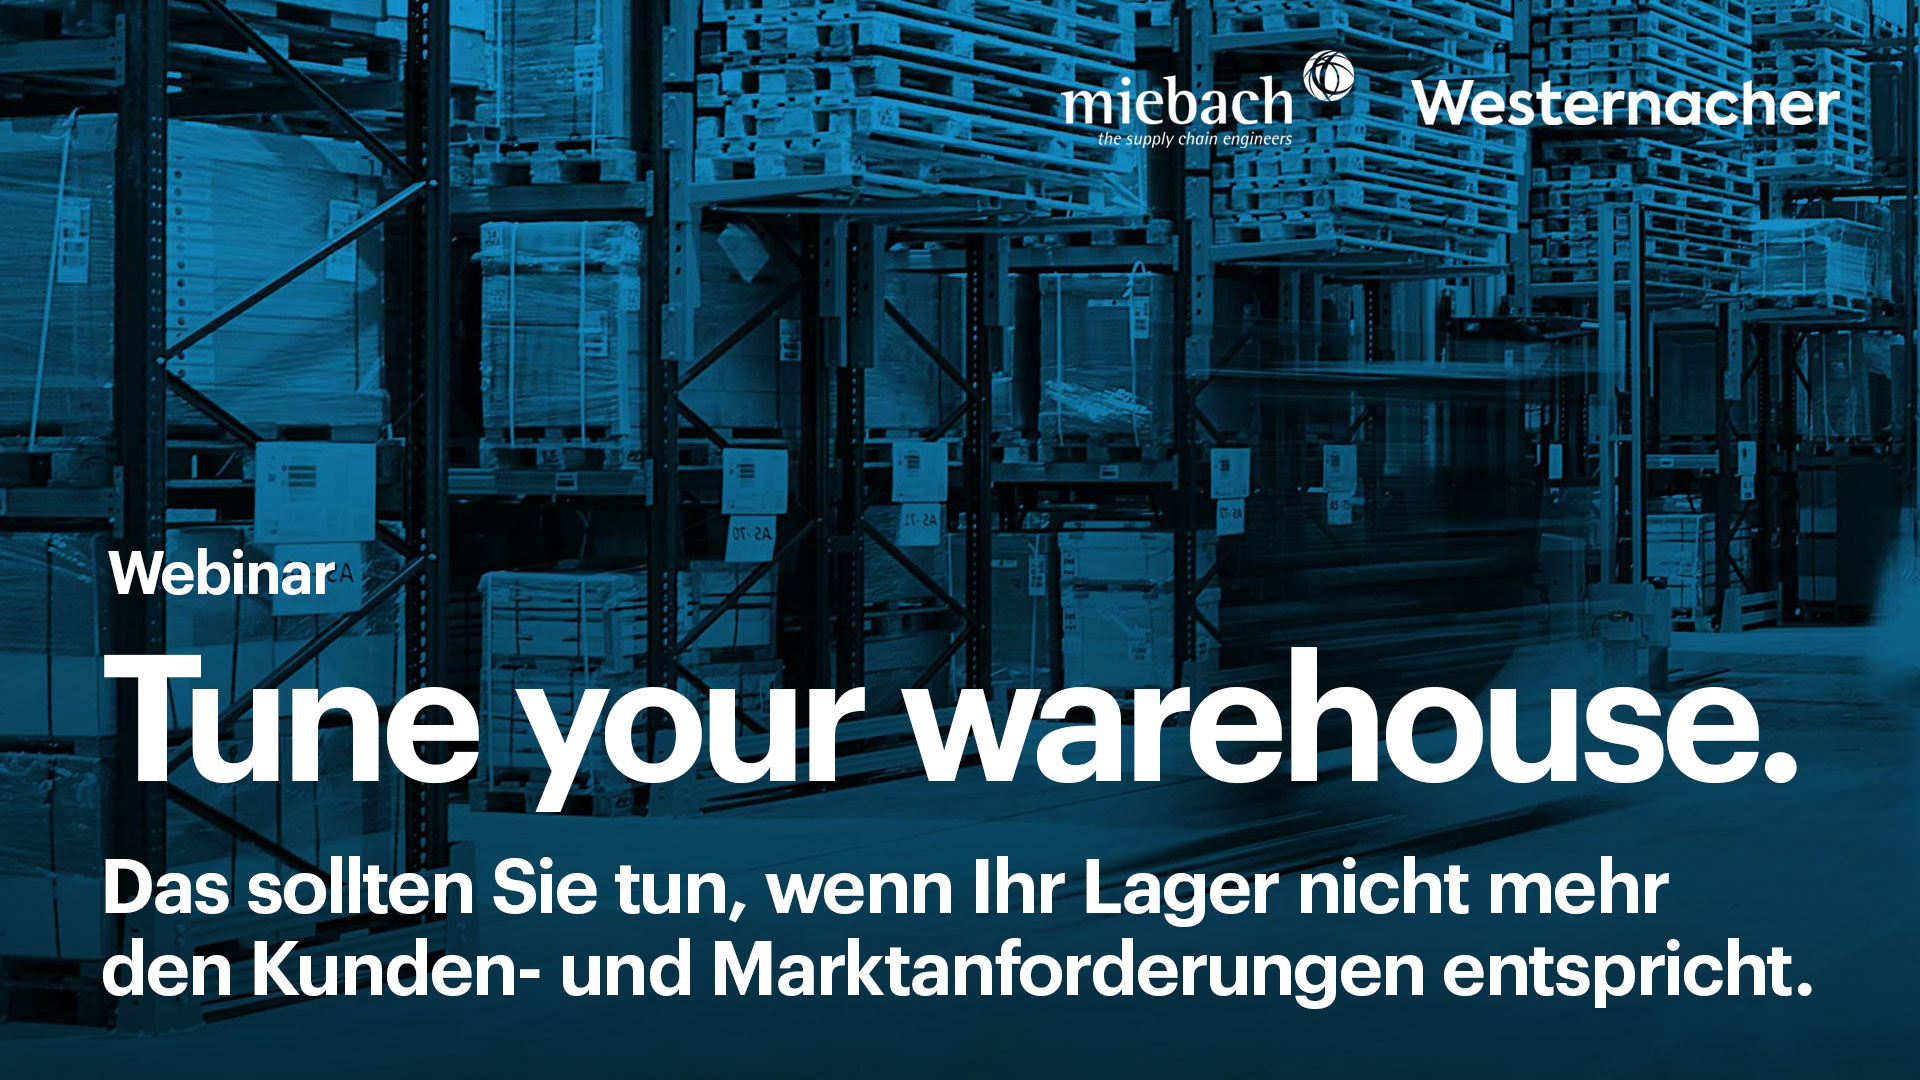 Tune-your-warehouse